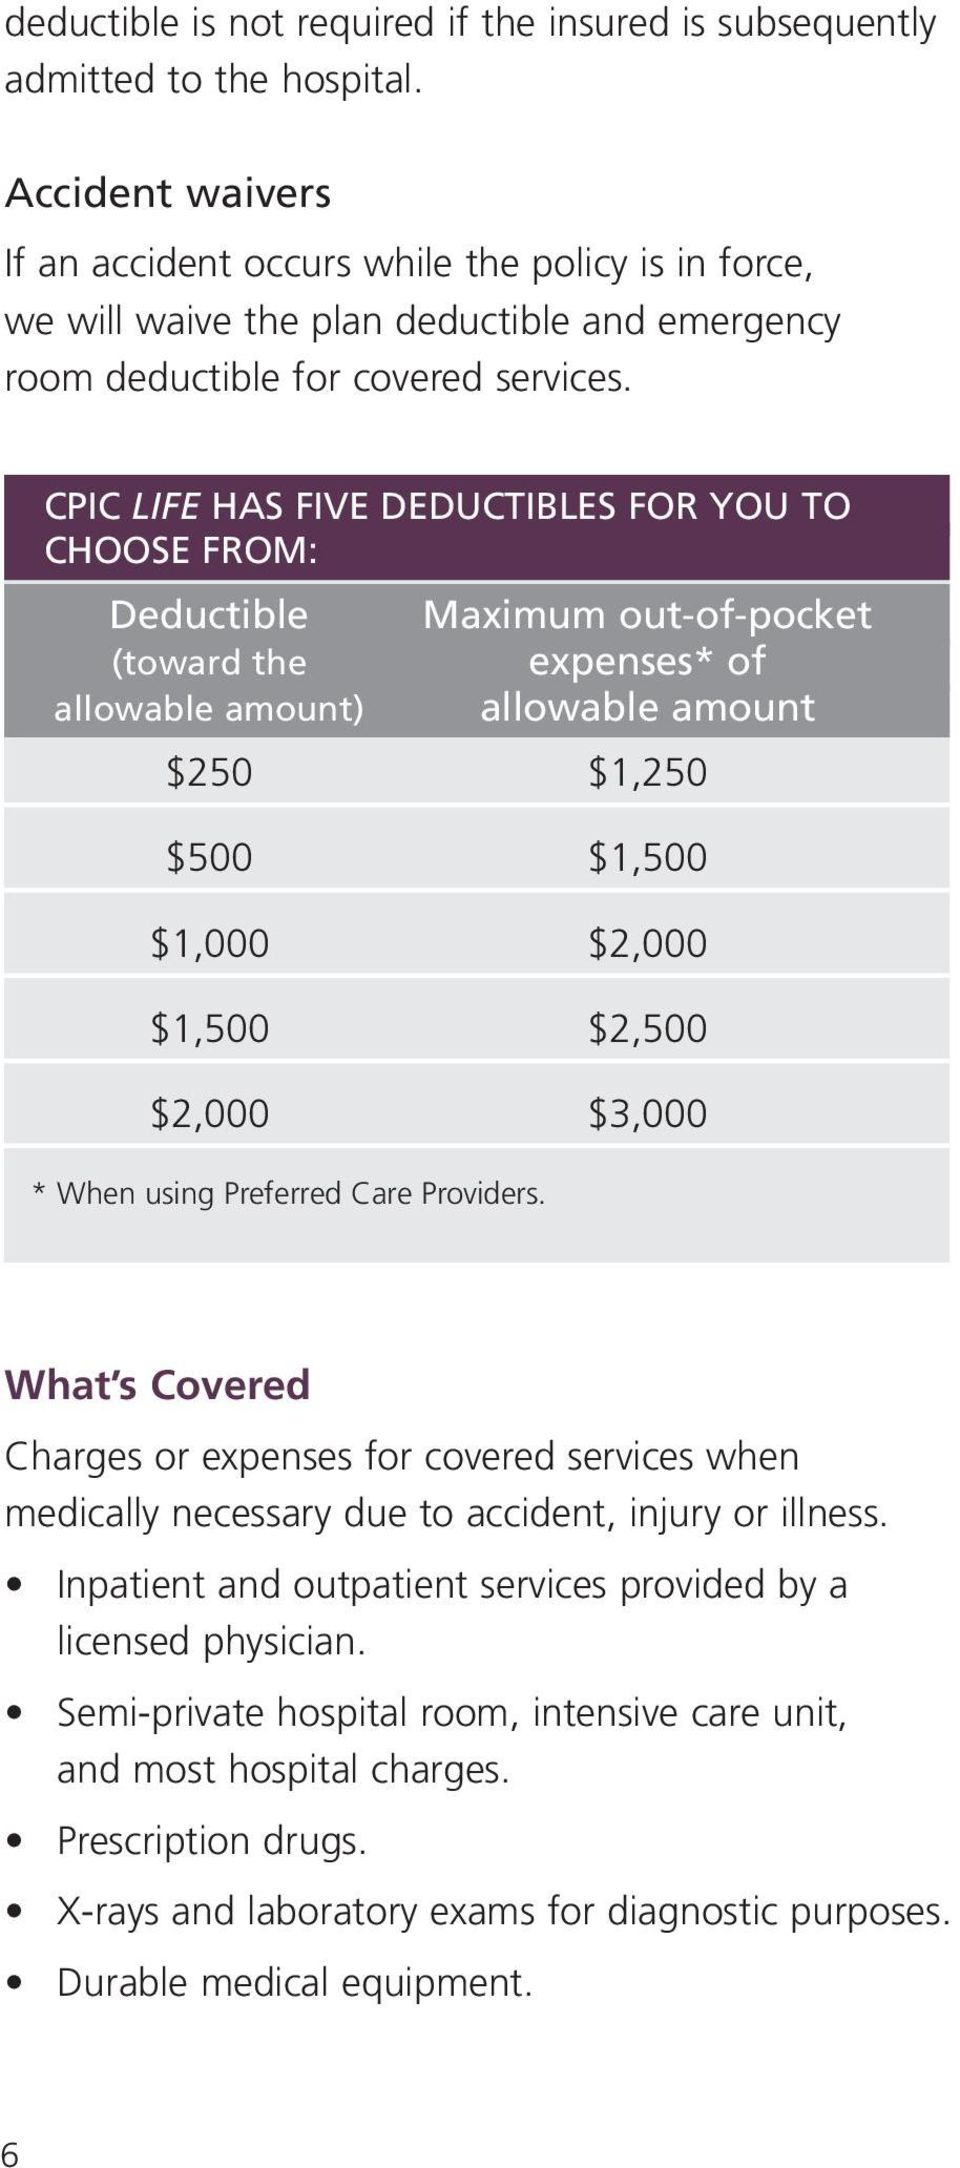 CPIC LIFE HAS FIVE DEDUCTIBLES FOR YOU TO CHOOSE FROM: Deductible (toward the allowable amount) Maximum out-of-pocket expenses* of allowable amount $250 $1,250 $500 $1,500 $1,000 $2,000 $1,500 $2,500